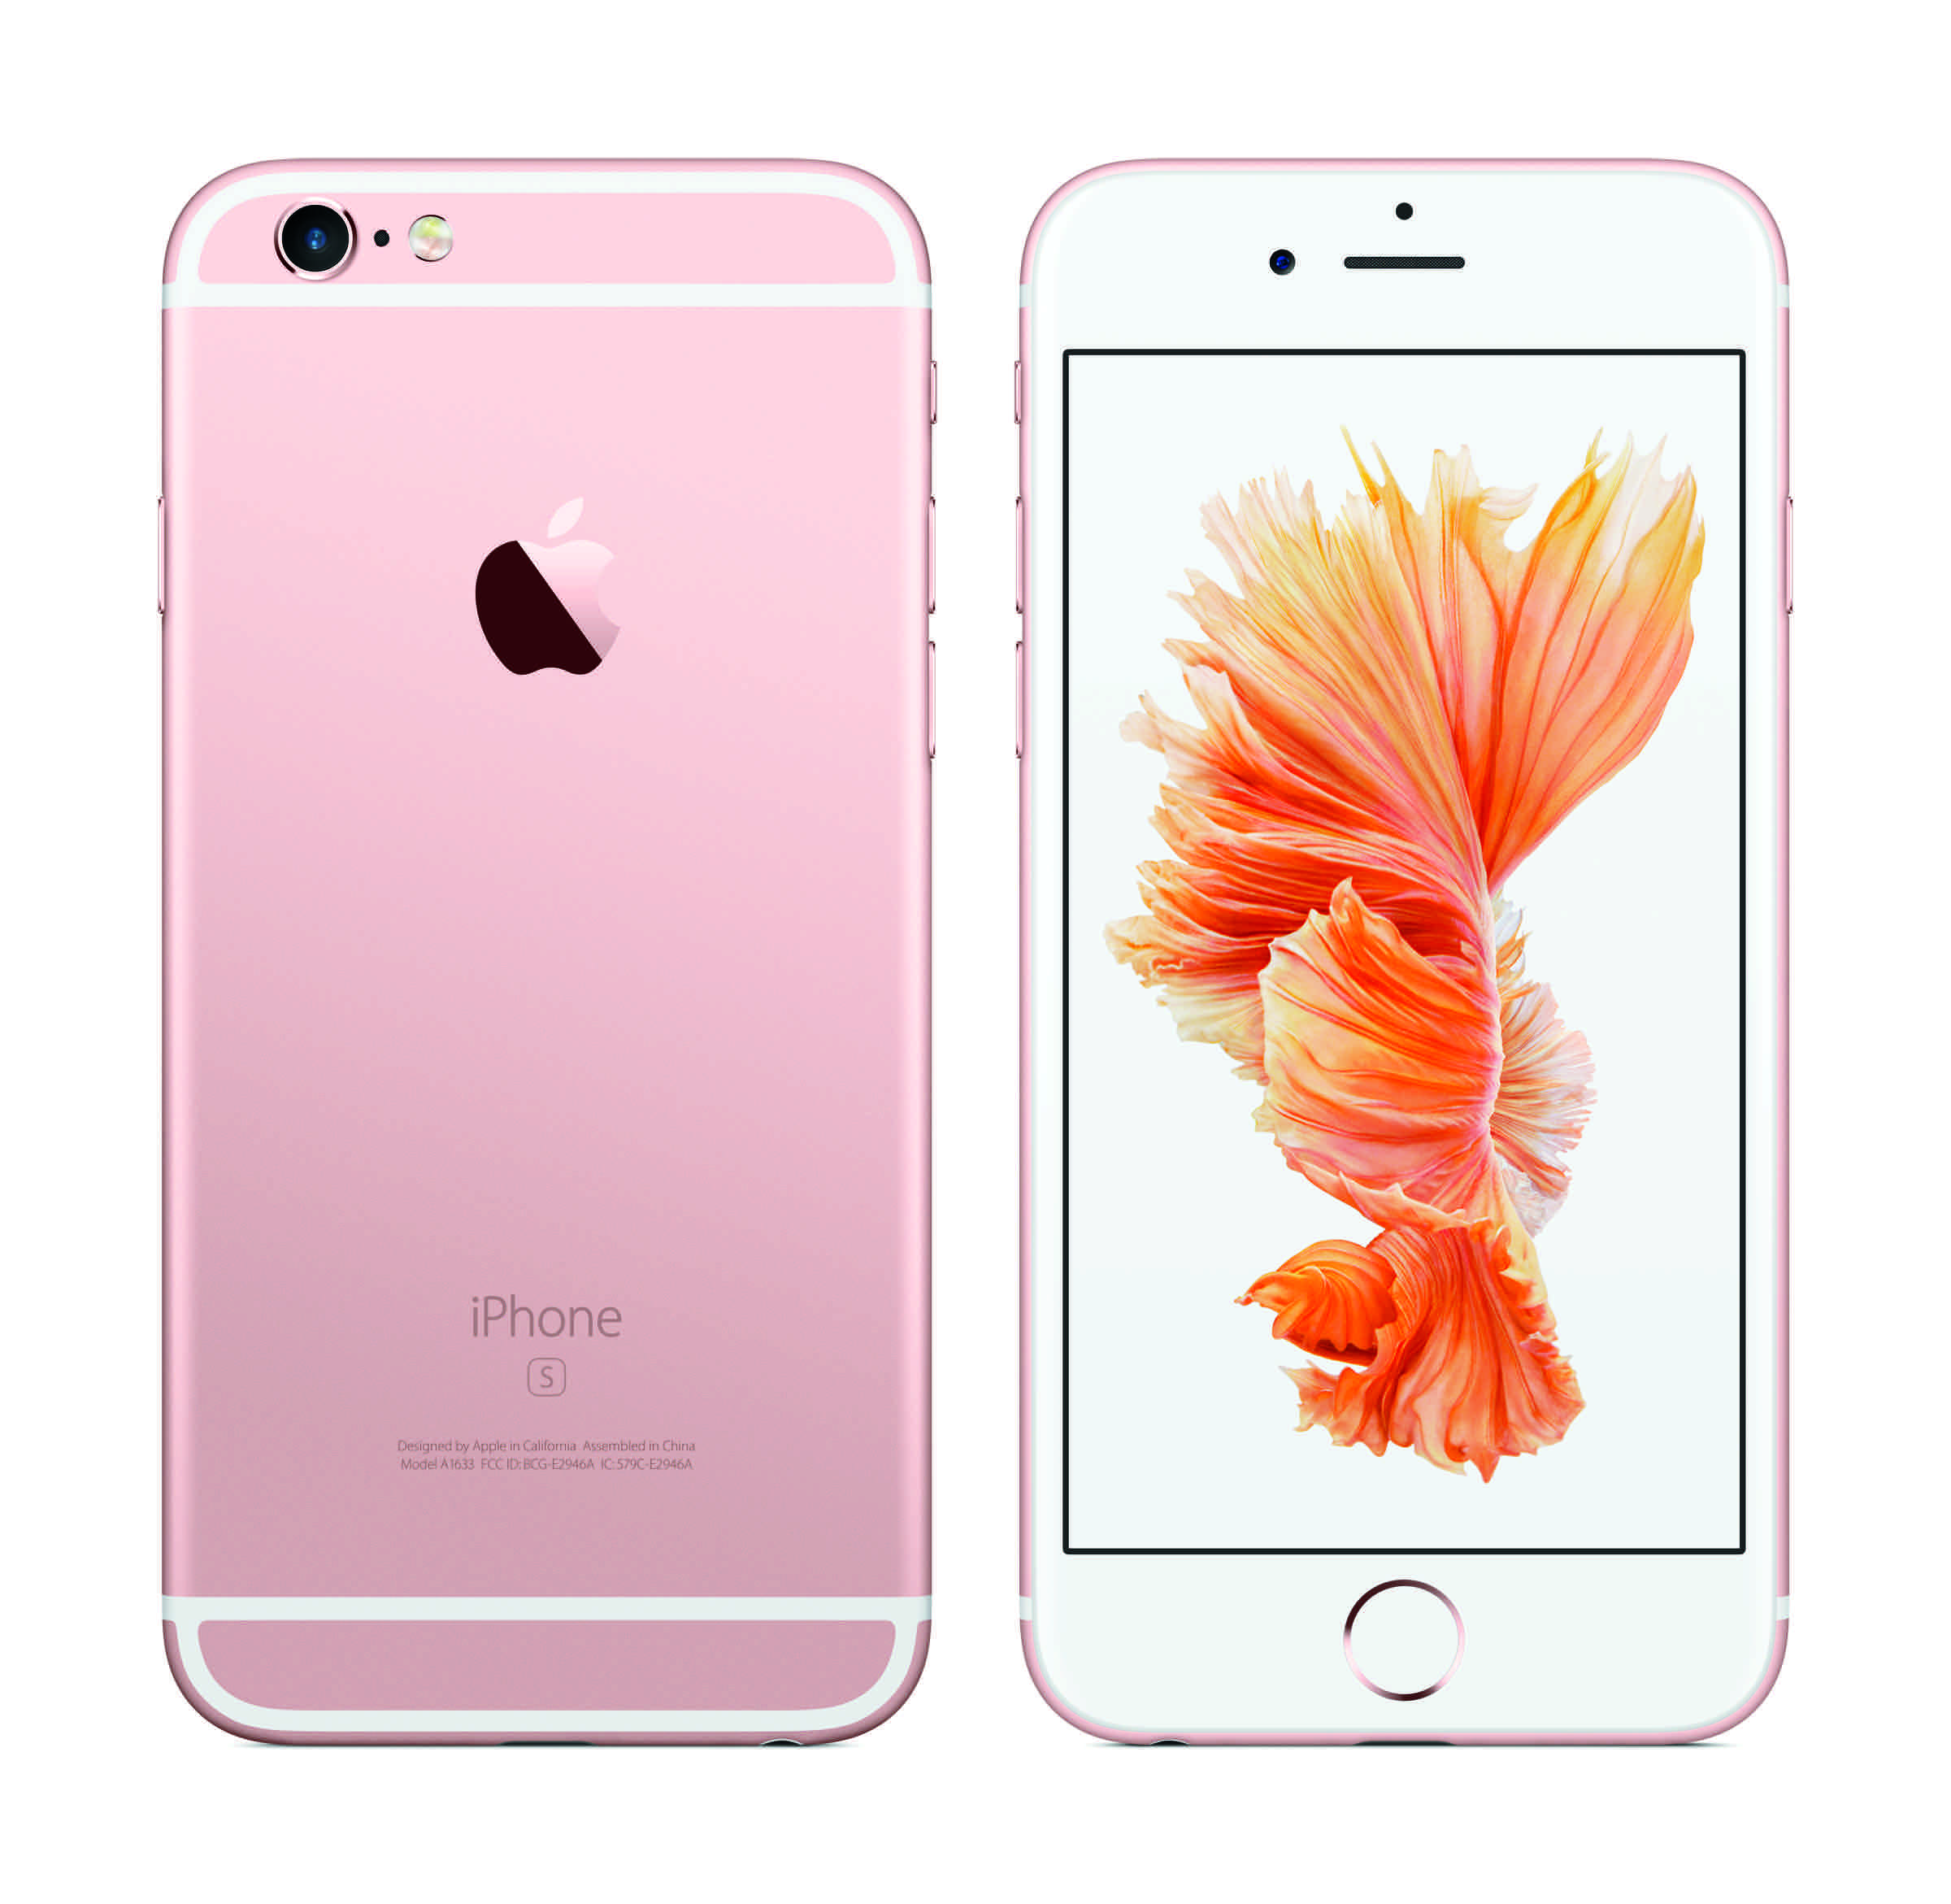 8d8ba306f9ada3 Apple iPhone 6s And iPhone 6s Plus Price, Pre-Order And Release Date